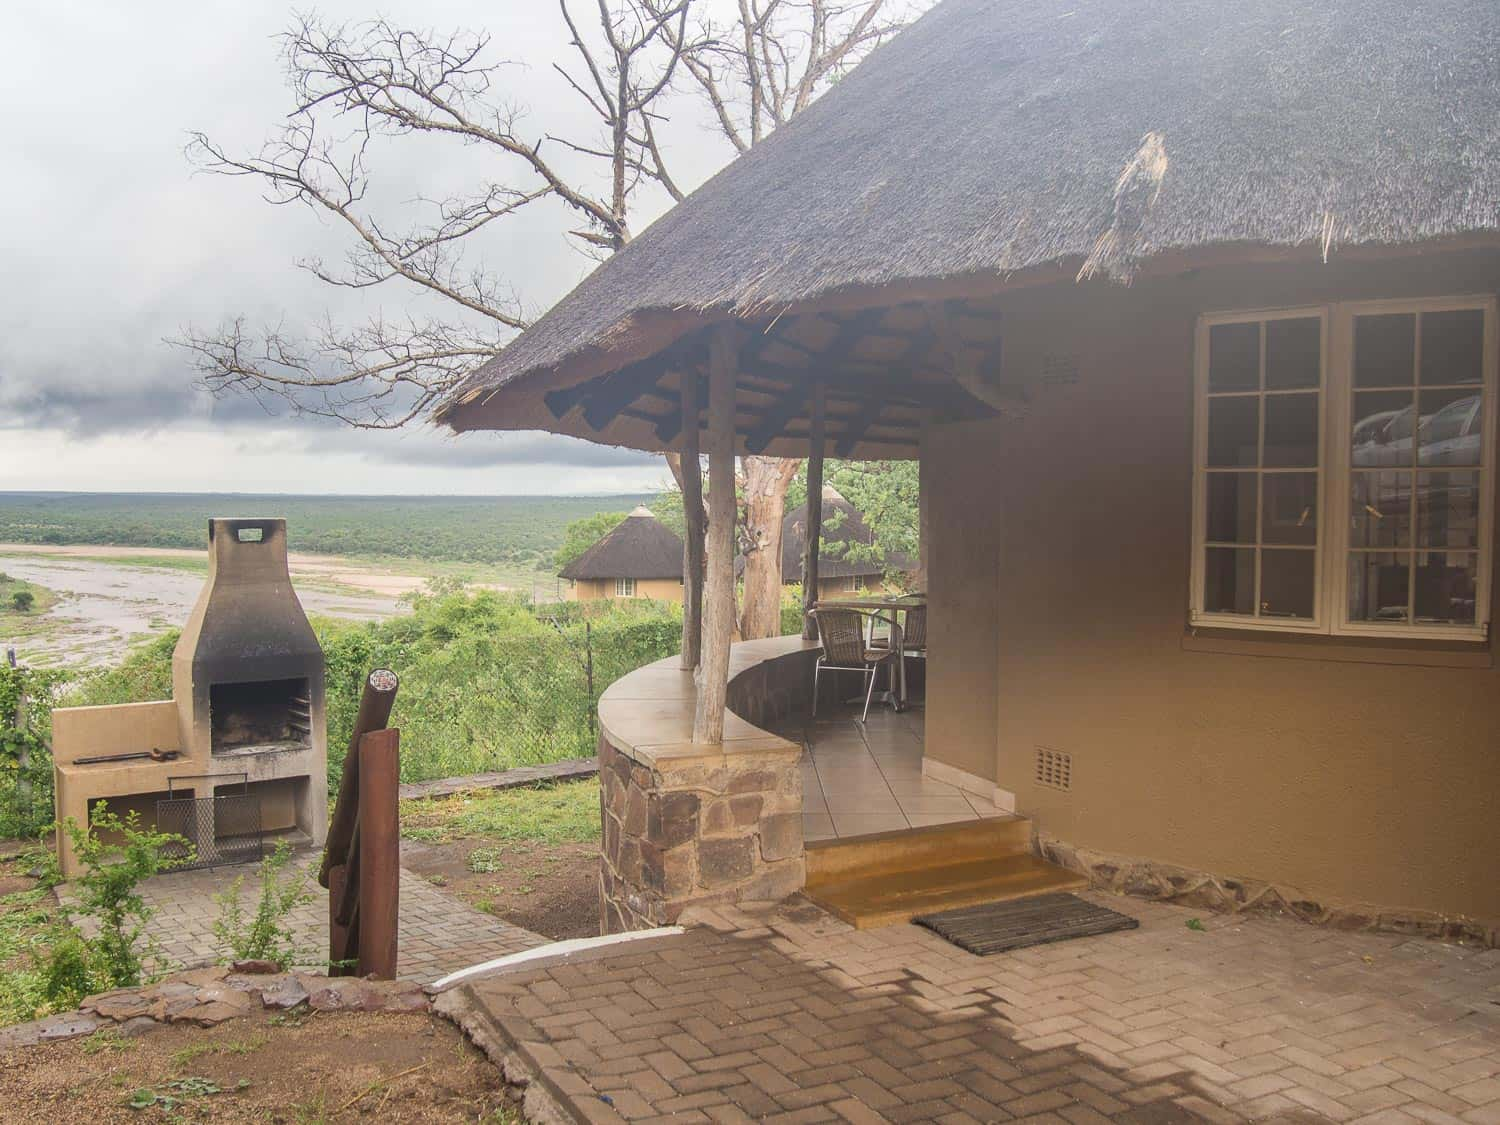 Kruger self-drive guide - Our bungalow at Olifants Rest Camp